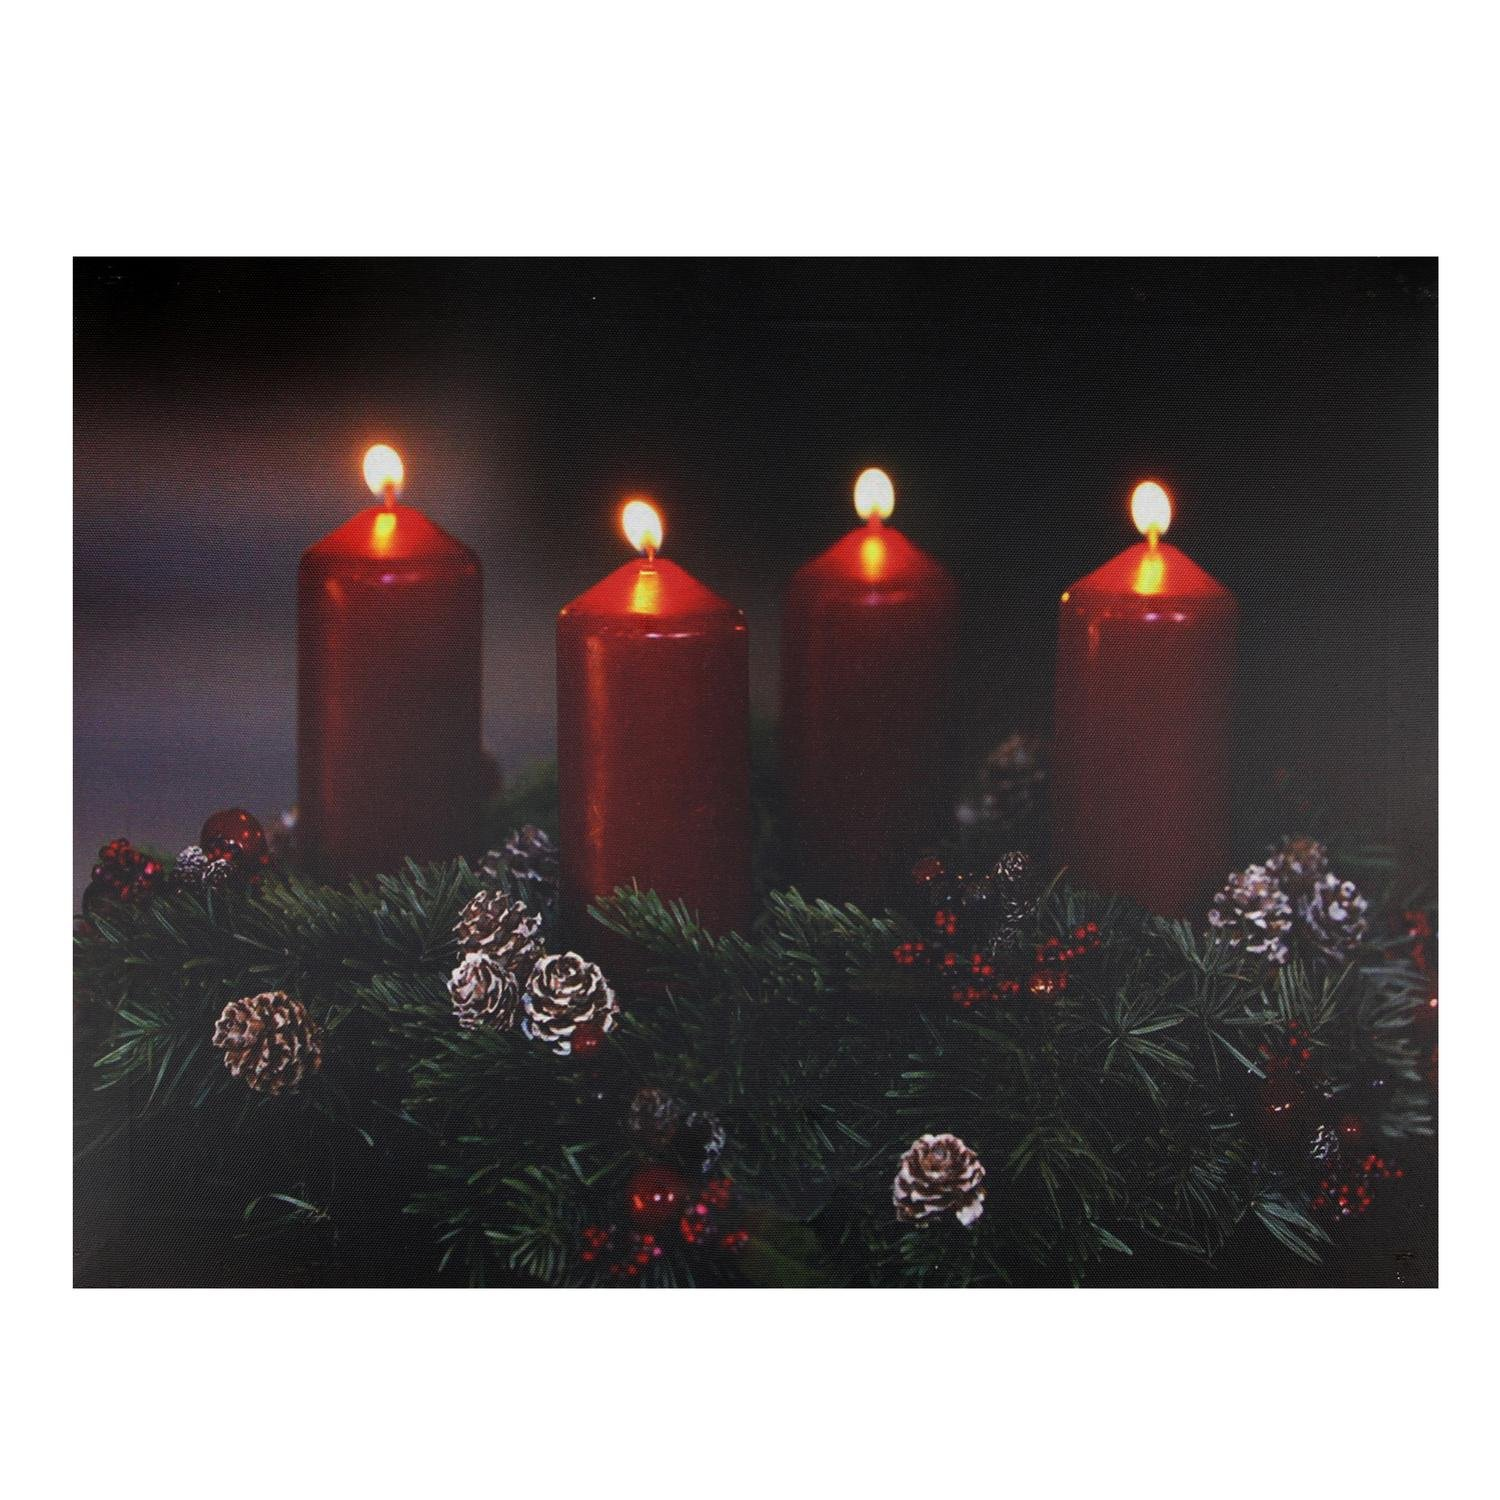 Northlight LED Lighted Flickering Candle Wreath Christmas Canvas Wall Art 12'' x 15.75'' Signs and Plaques, Green